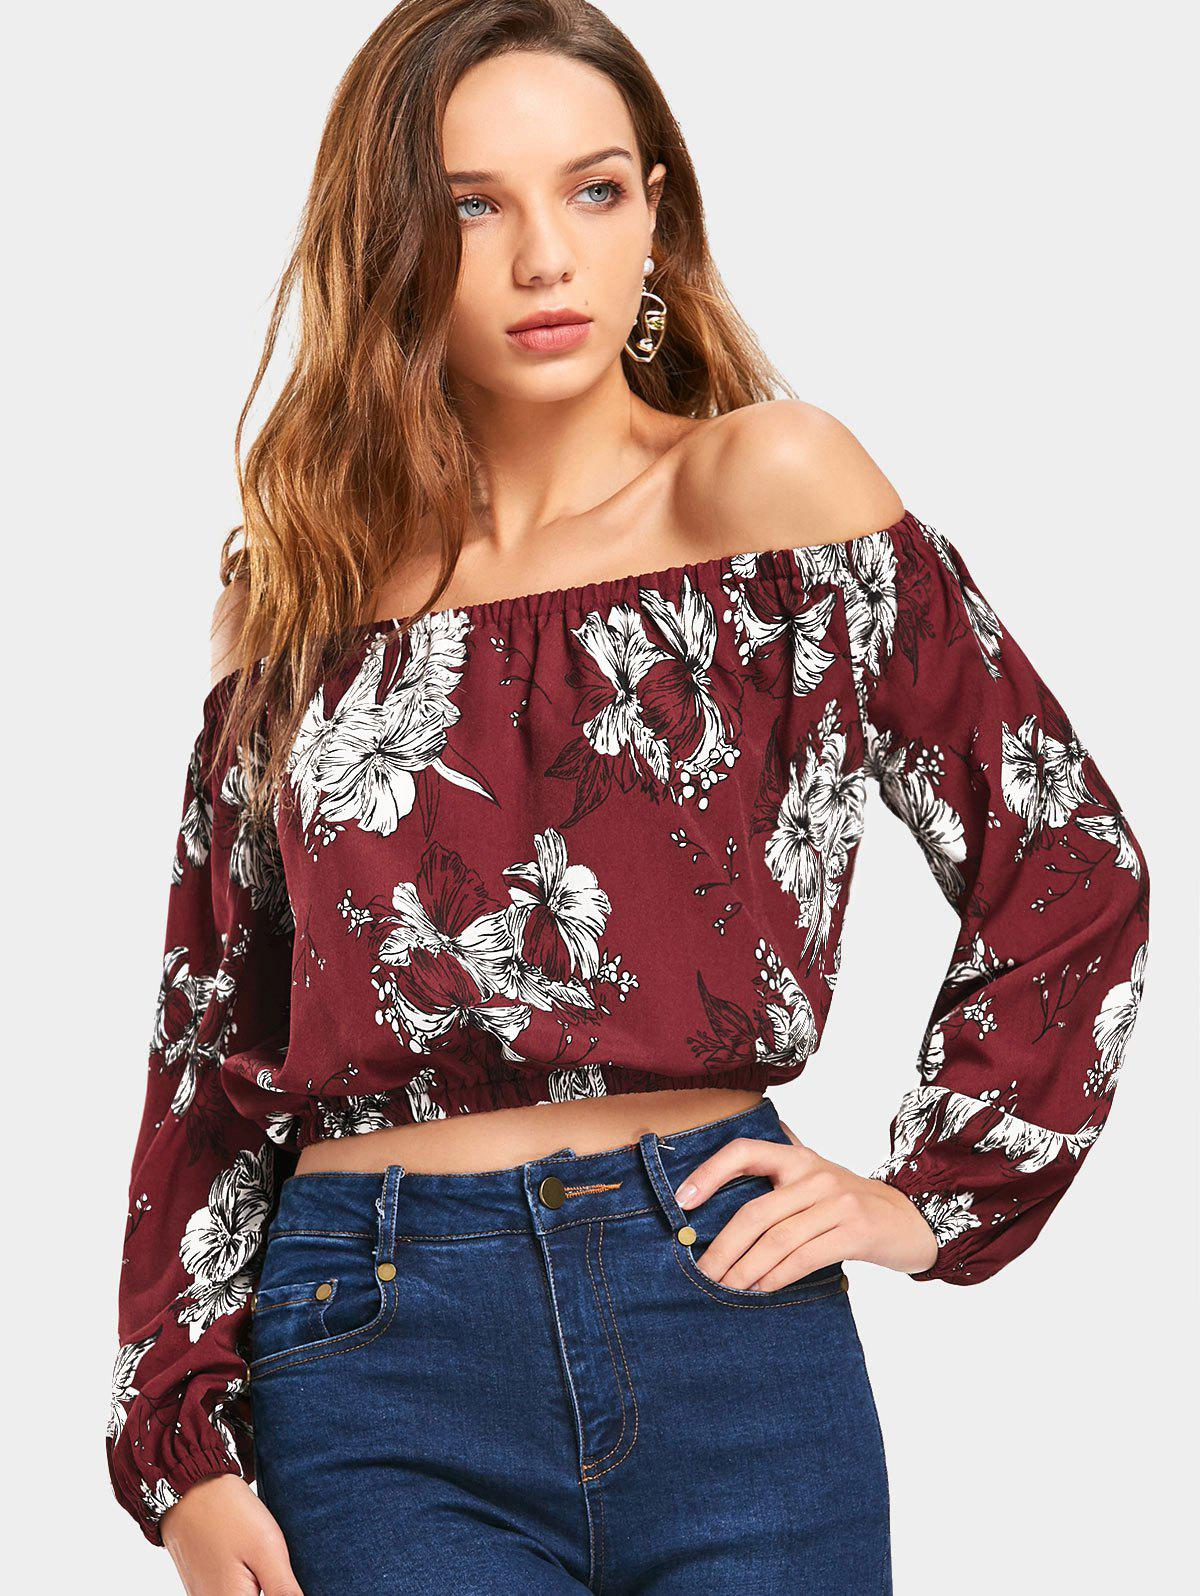 Cropped Floral Schulterfrei Bluse